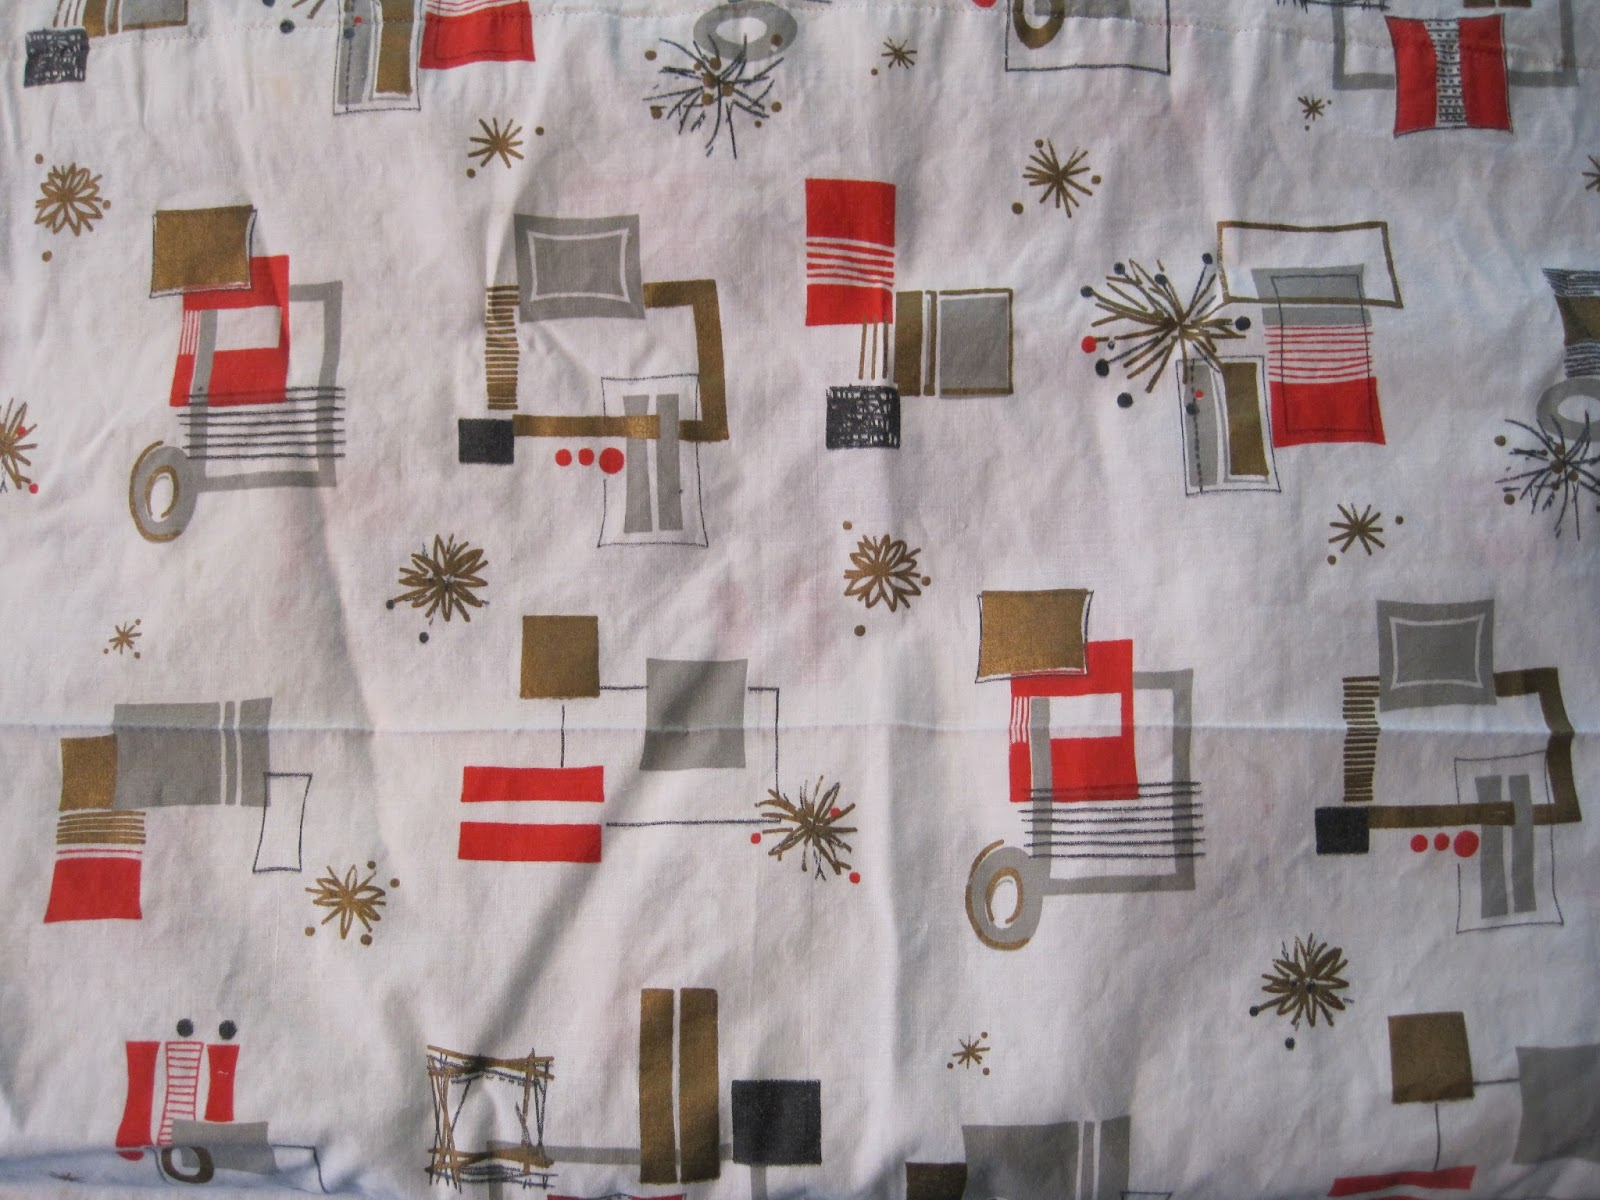 Retro 1950s Fabric Kitchen Curtains Mishistoriasdeterror Retro